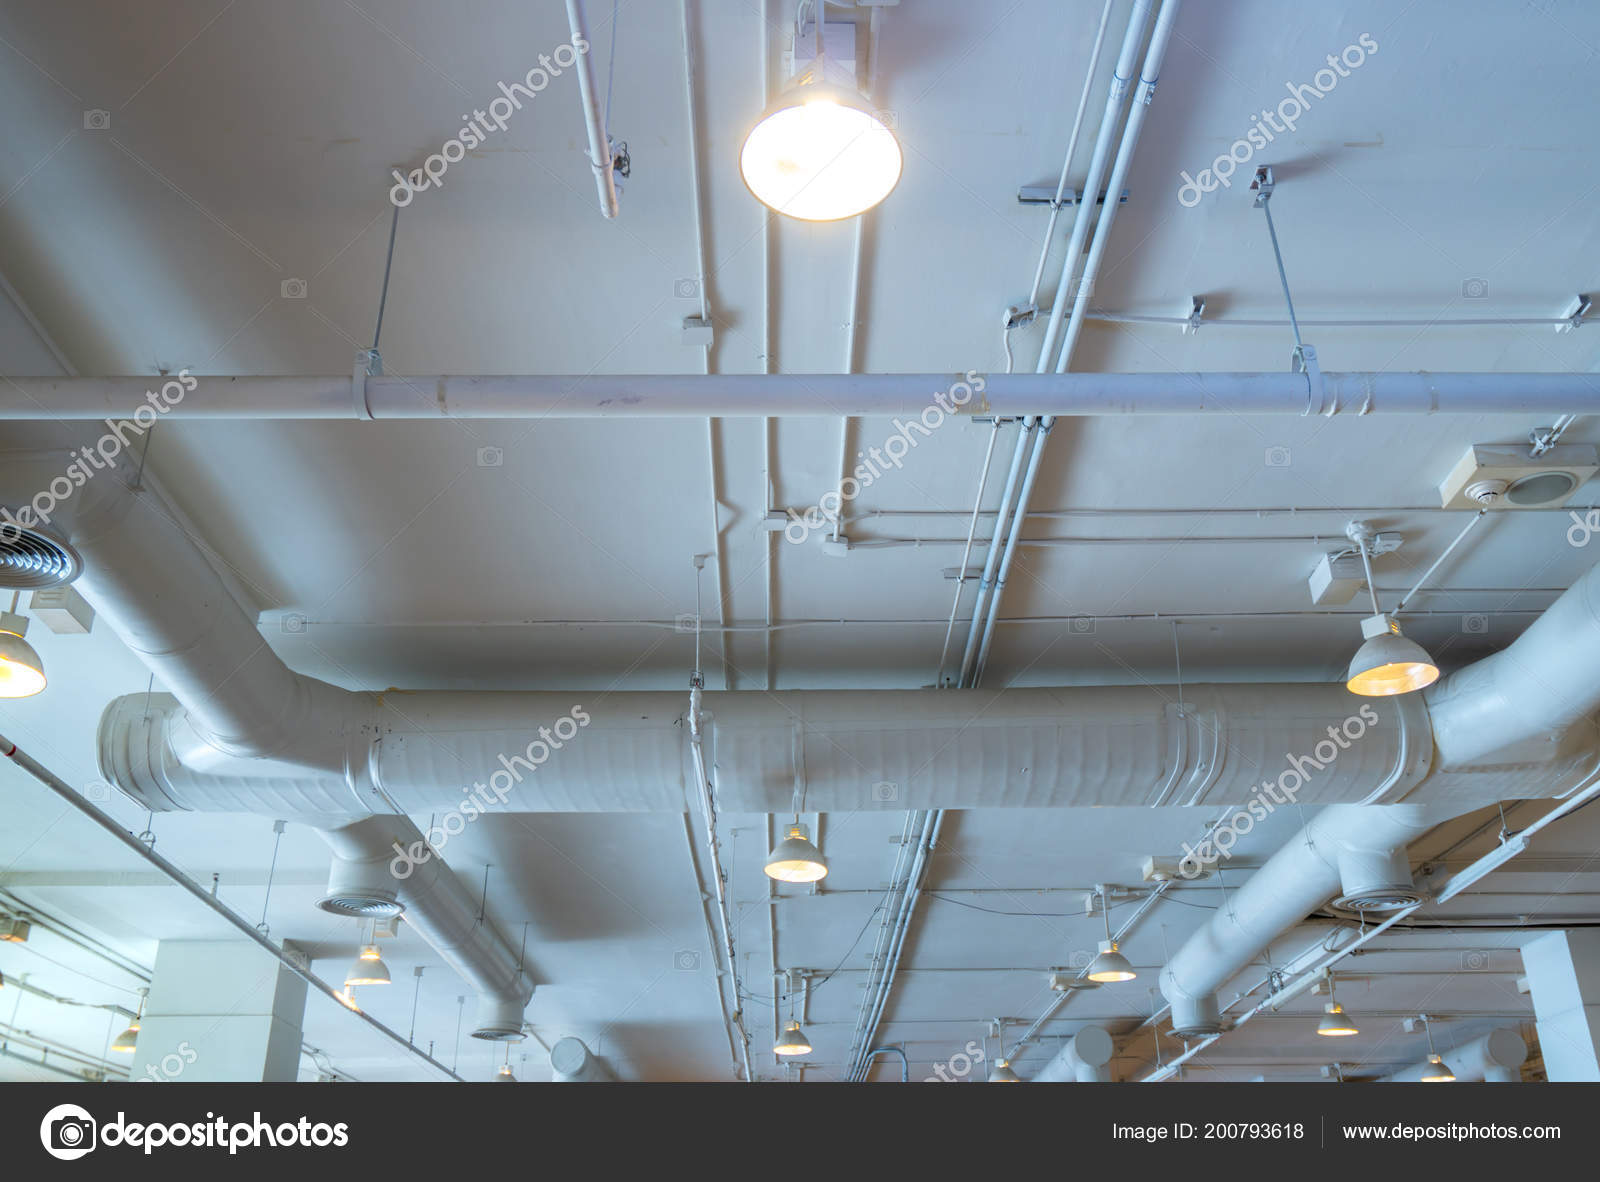 hight resolution of air duct wiring plumbing mall air conditioner pipe wiring pipe stock photo